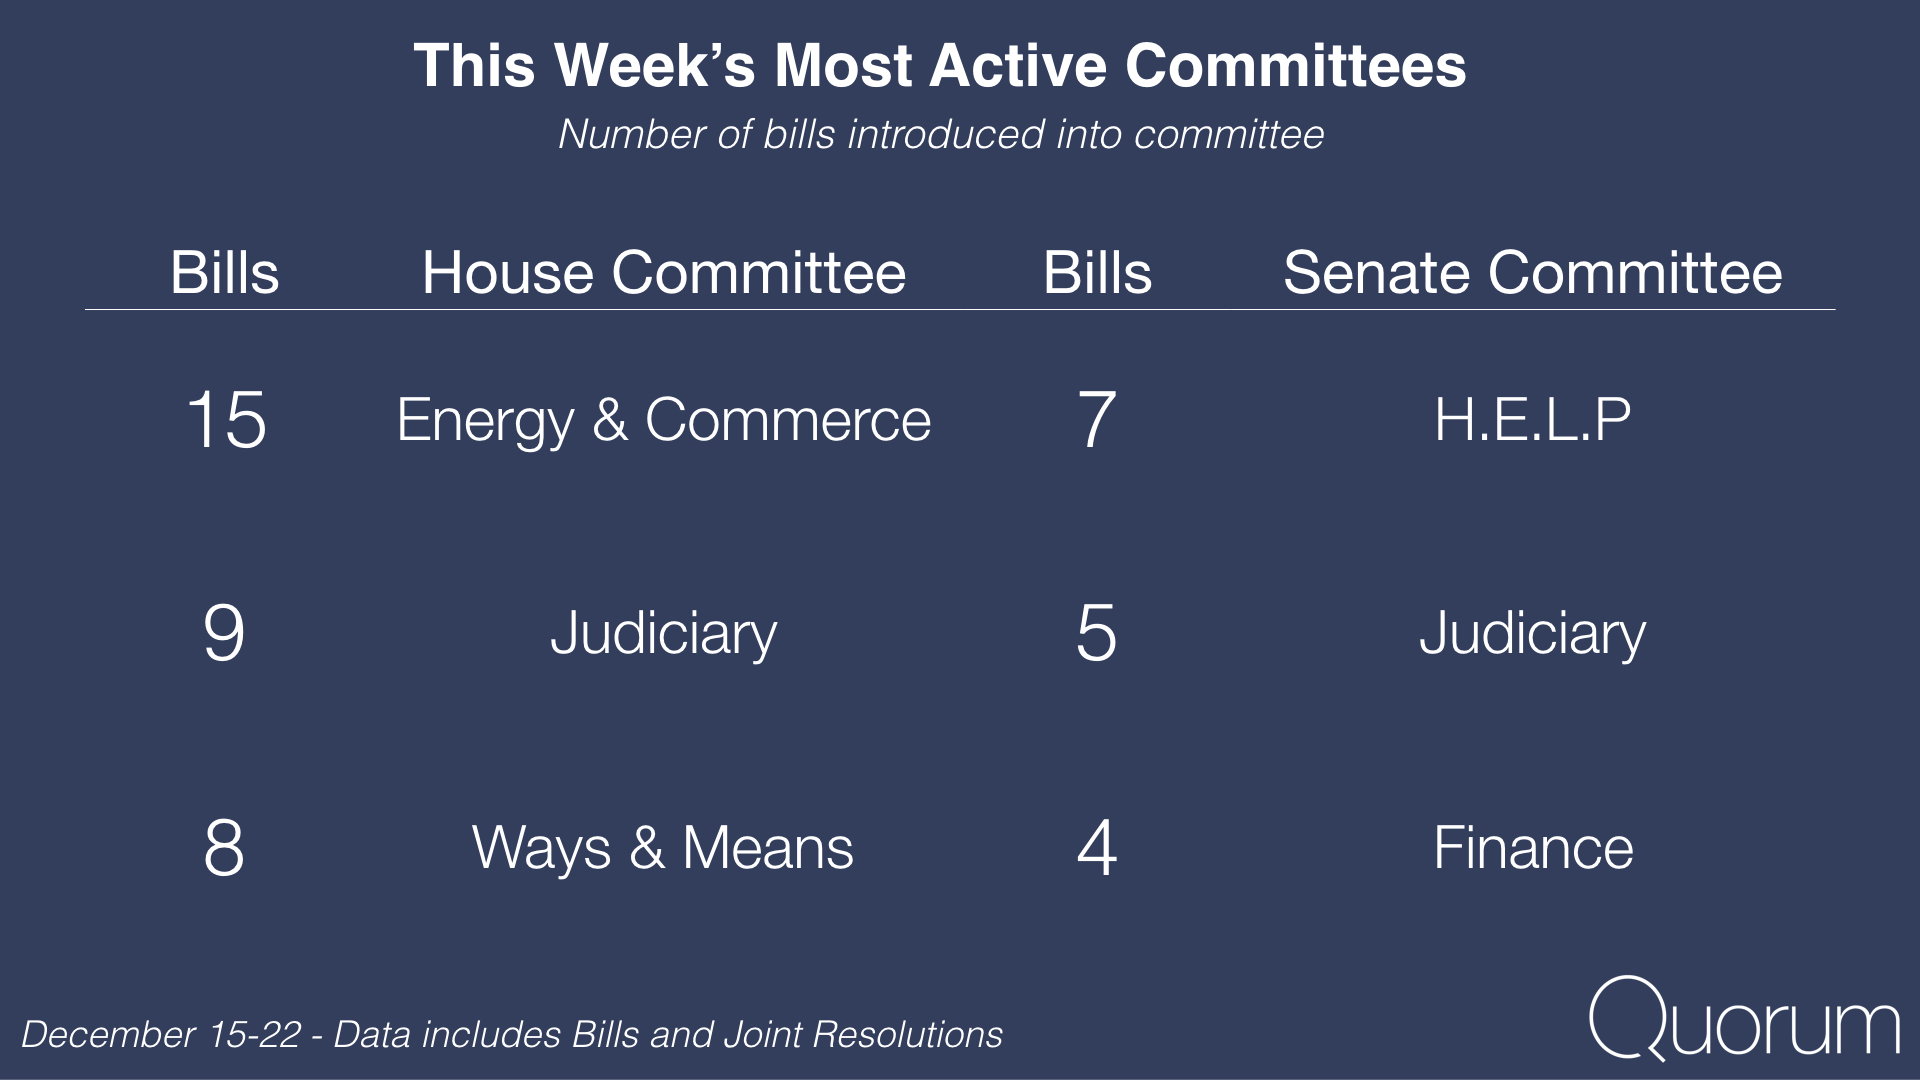 This week's most active Committees